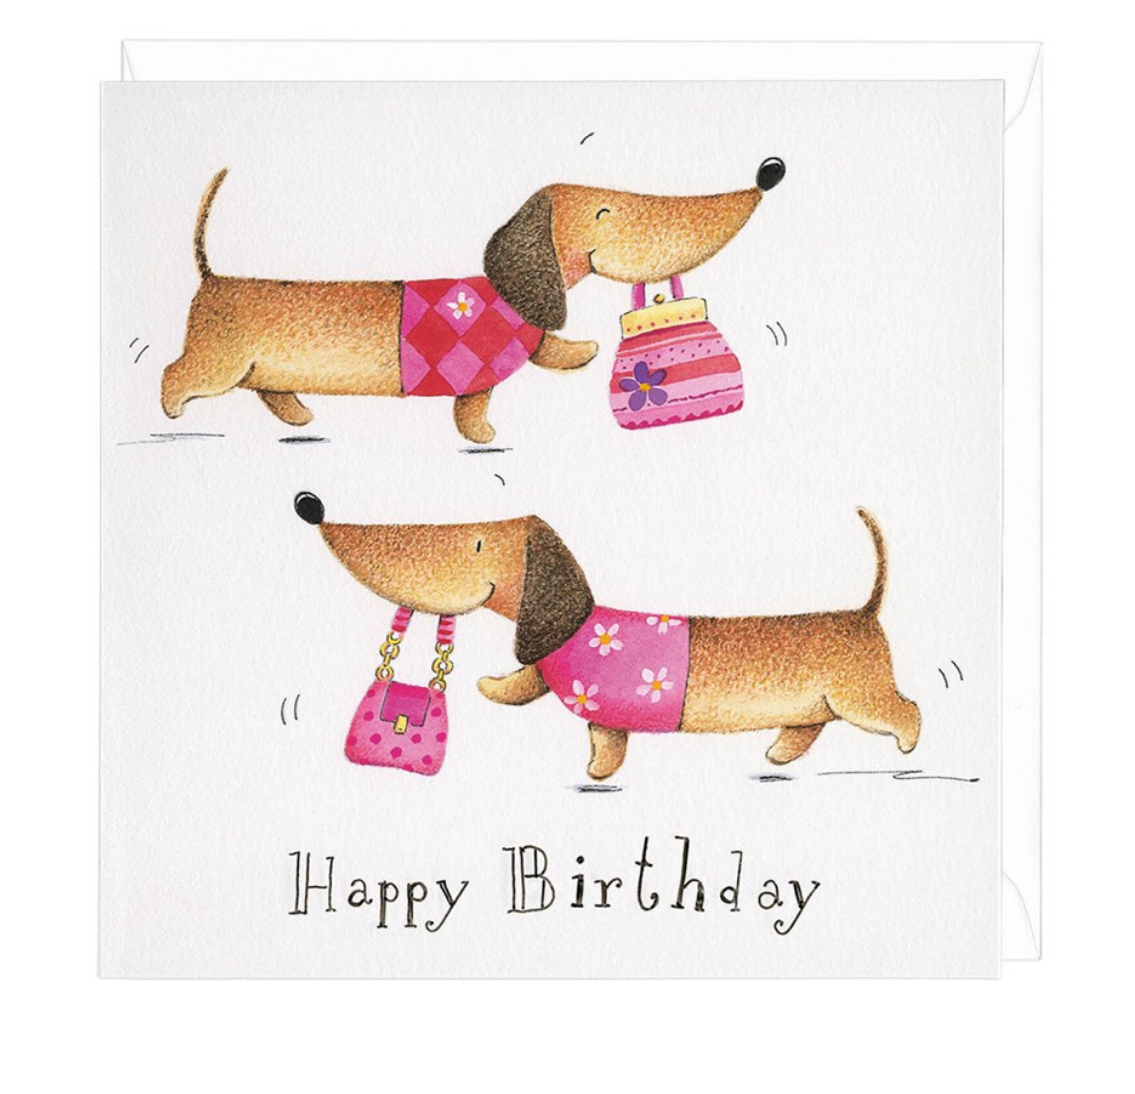 Dachshund birthday shopper greeting card m4hsunfo